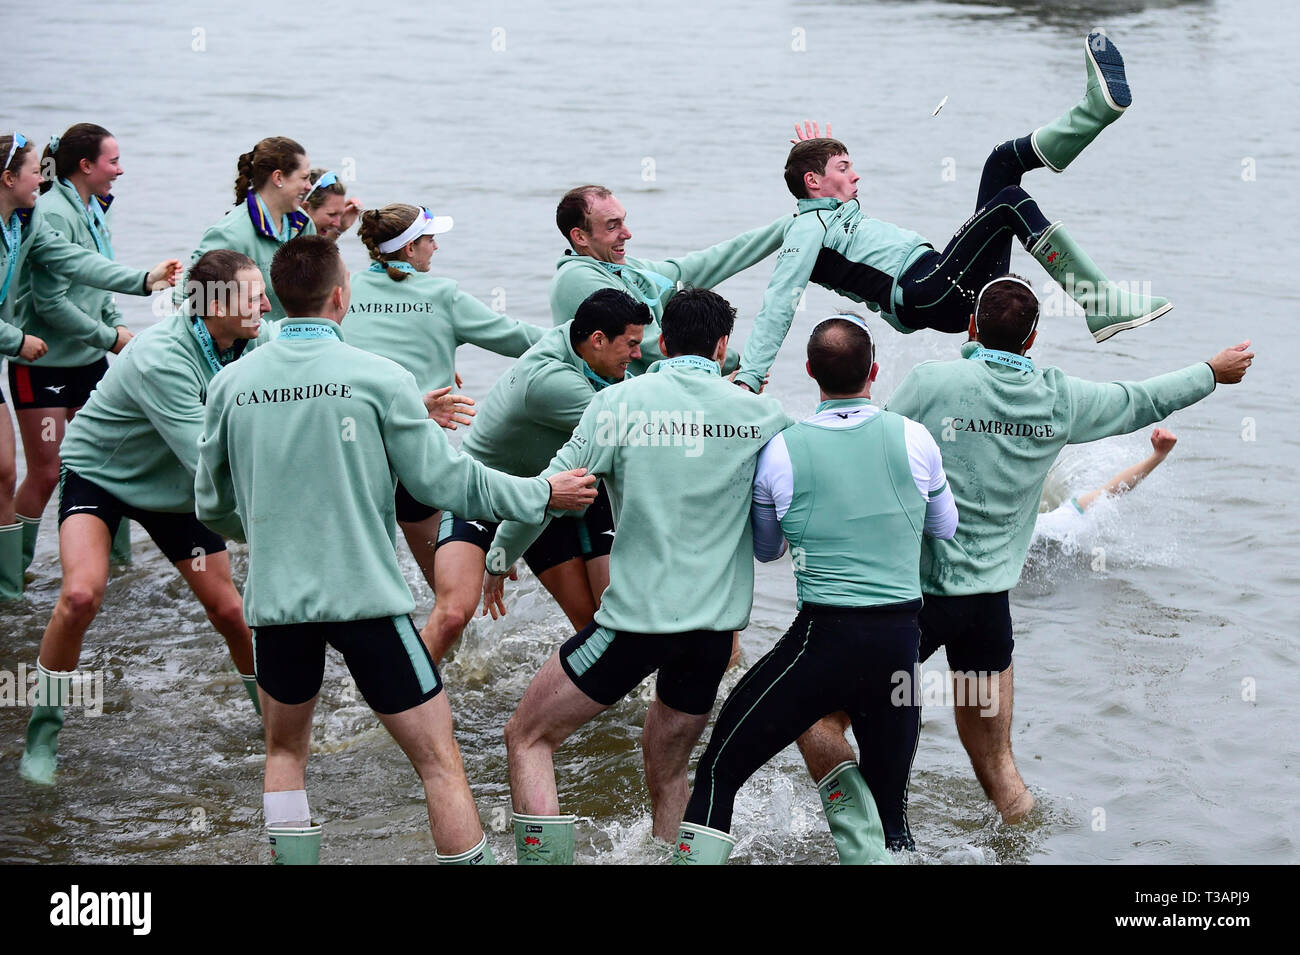 London, UK. 7th Apr, 2019. Cambridge University men's crew throw their cox Matthew Holland into the water after winning the men's boat race between Oxford University and Cambridge University on the River Thames in London on April 7, 2019. Credit: Stephen Chung/Xinhua/Alamy Live News Stock Photo